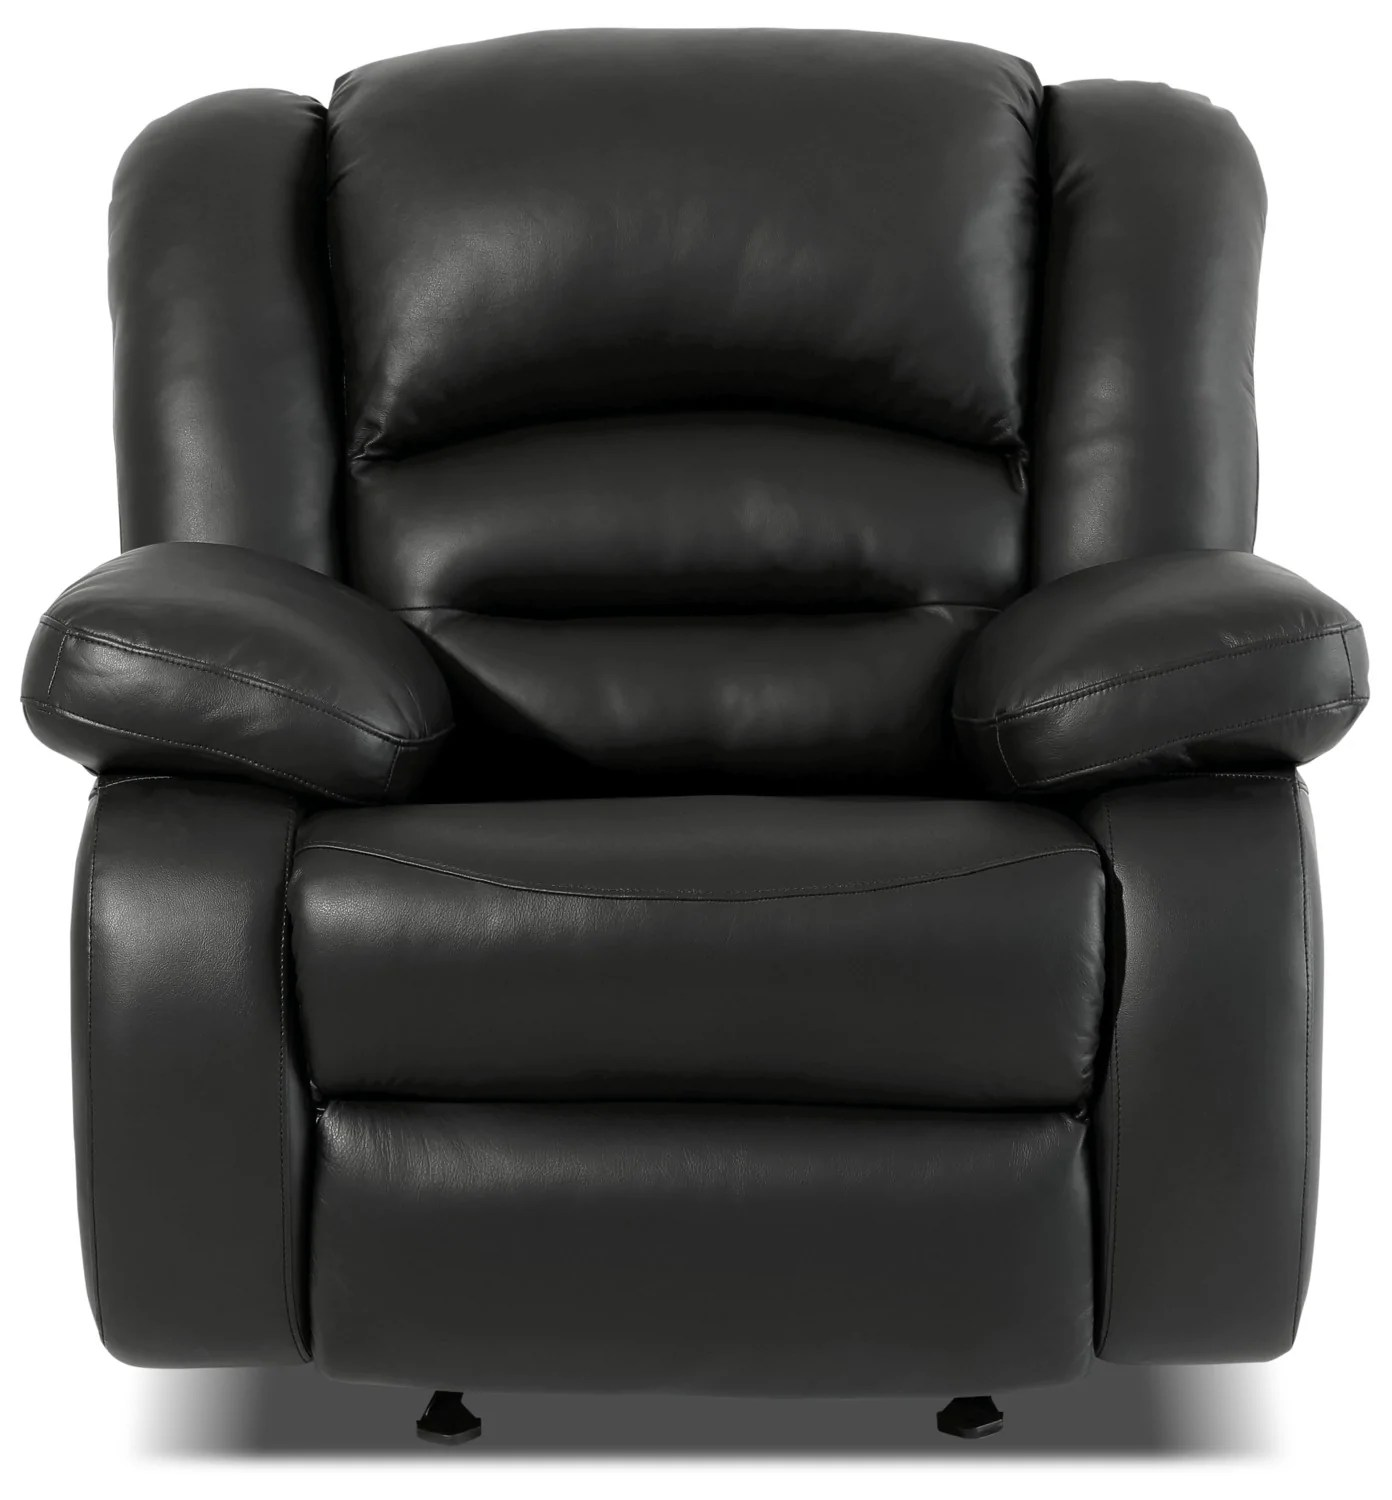 Leather Reclining Chairs Toreno Genuine Leather Reclining Glider Chair Black